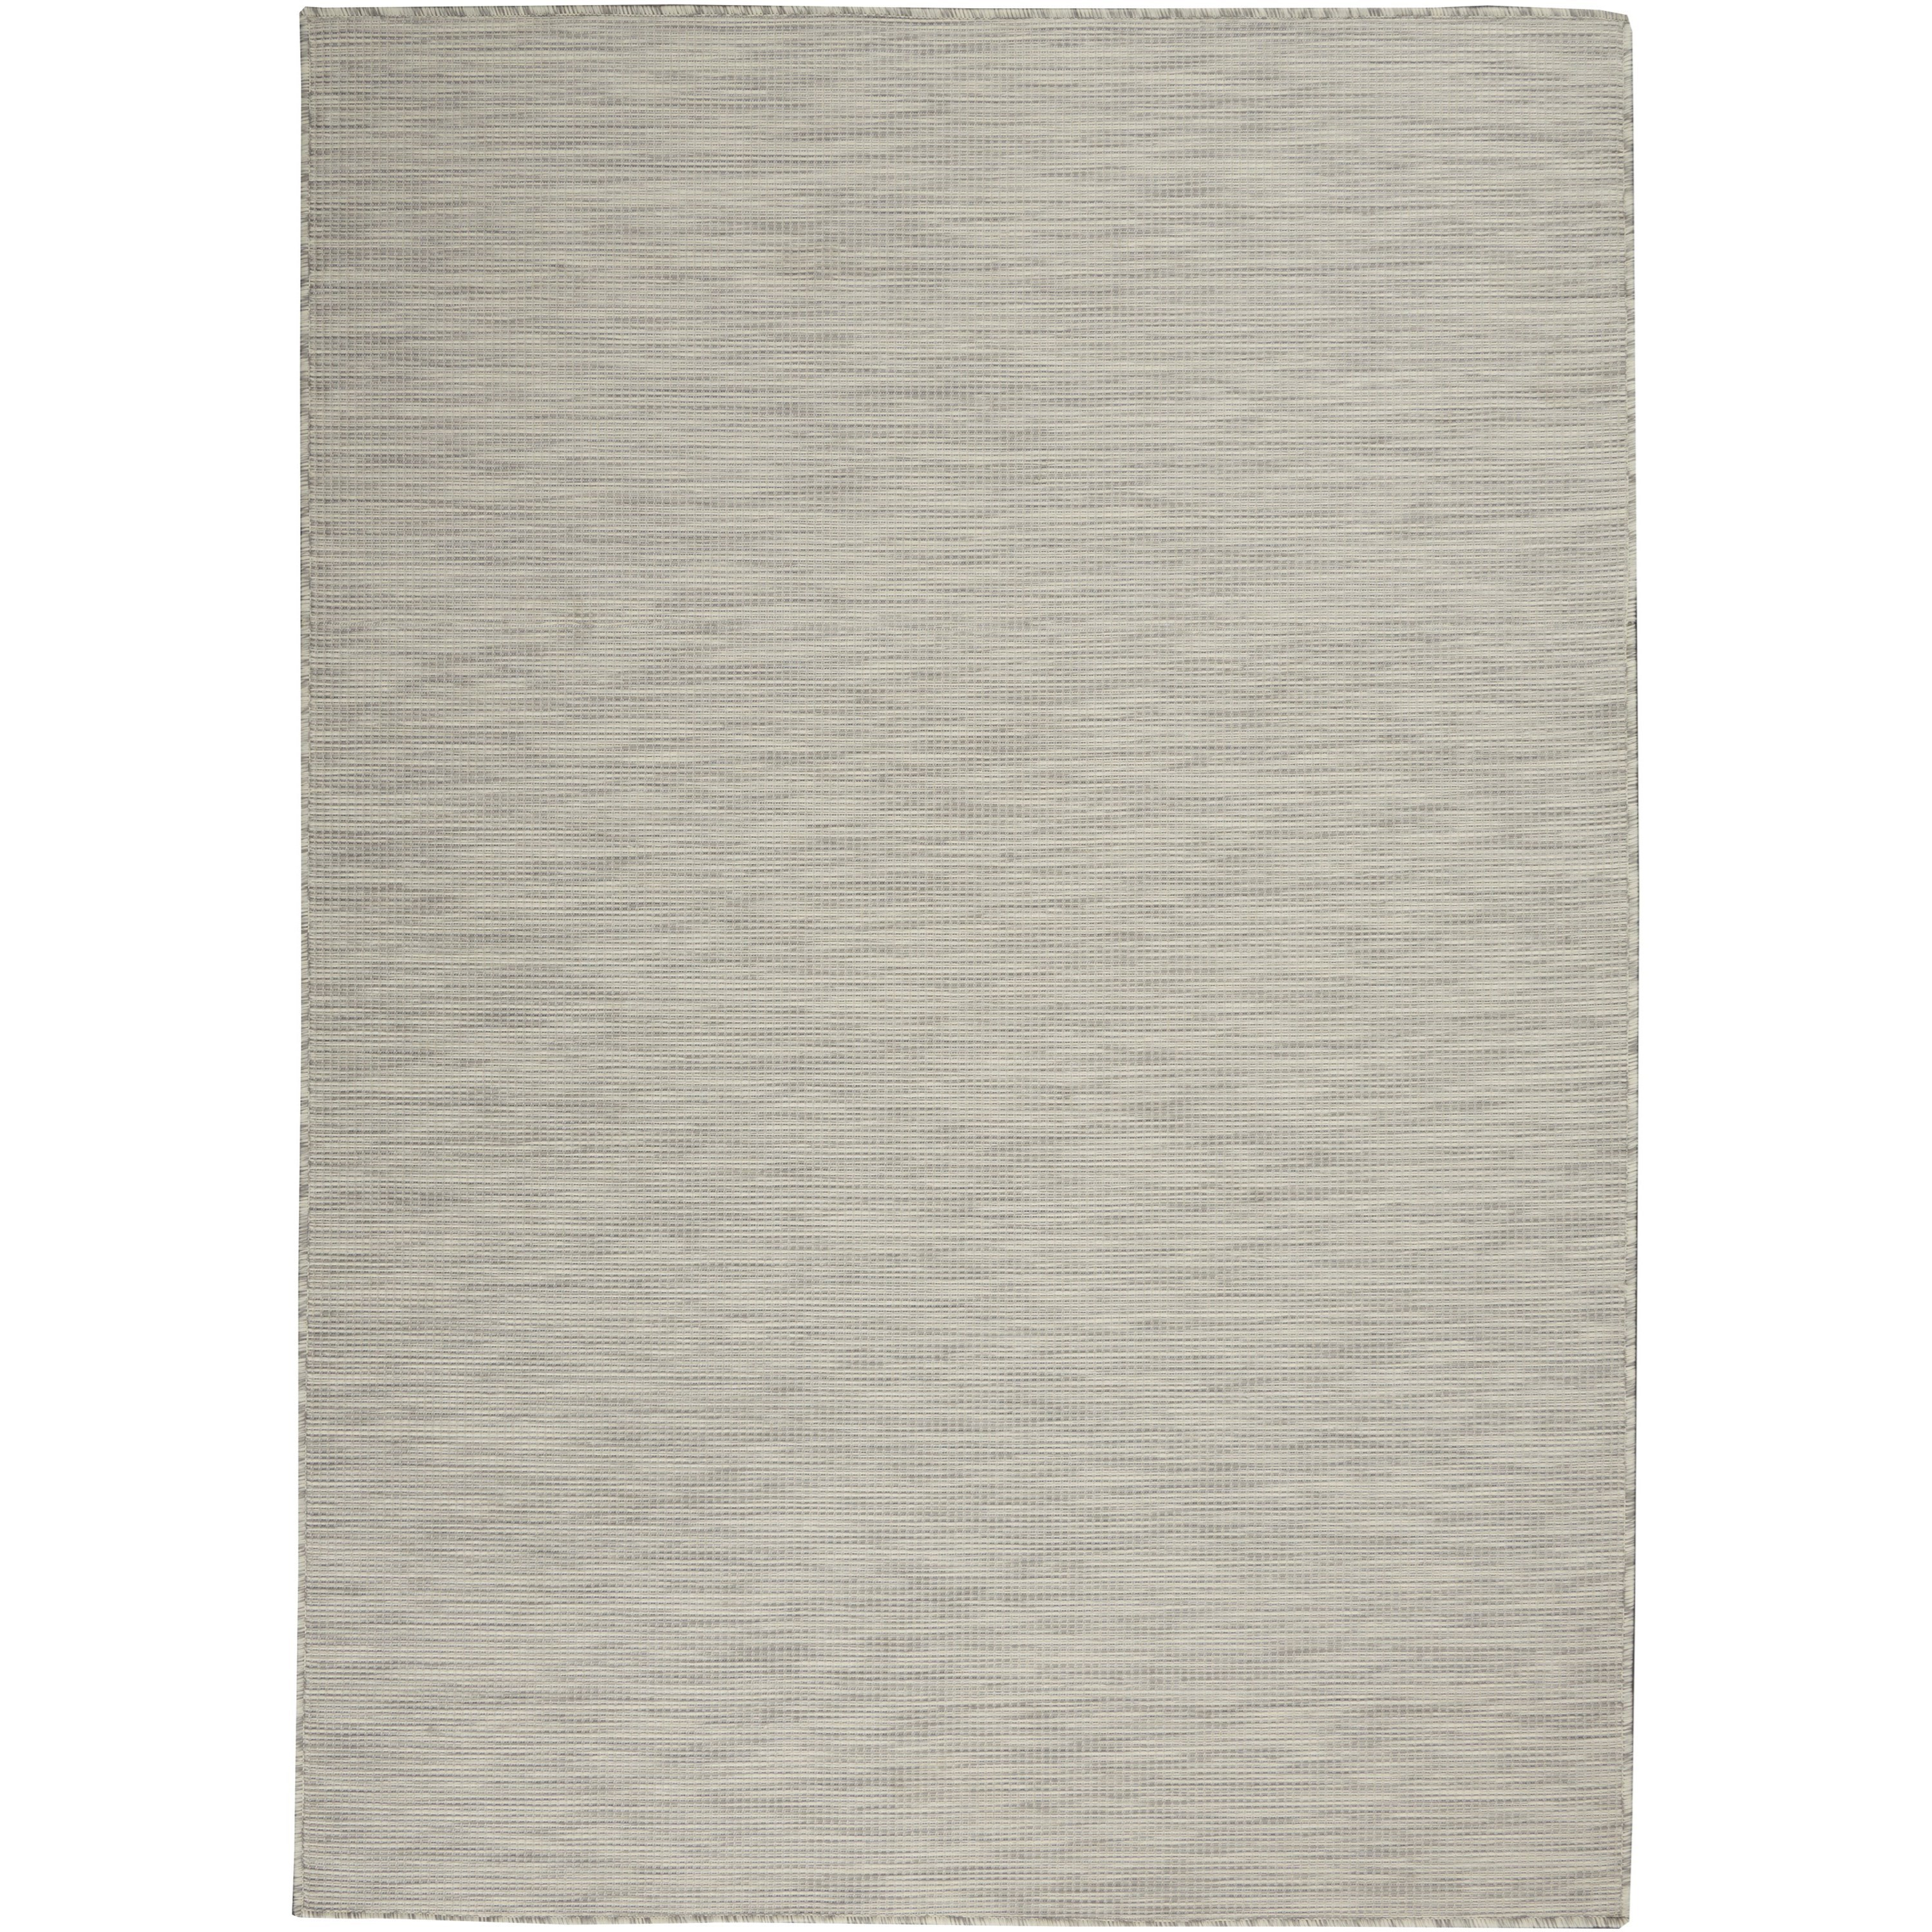 Positano 2020 5' x 7' Rug by Nourison at Adcock Furniture